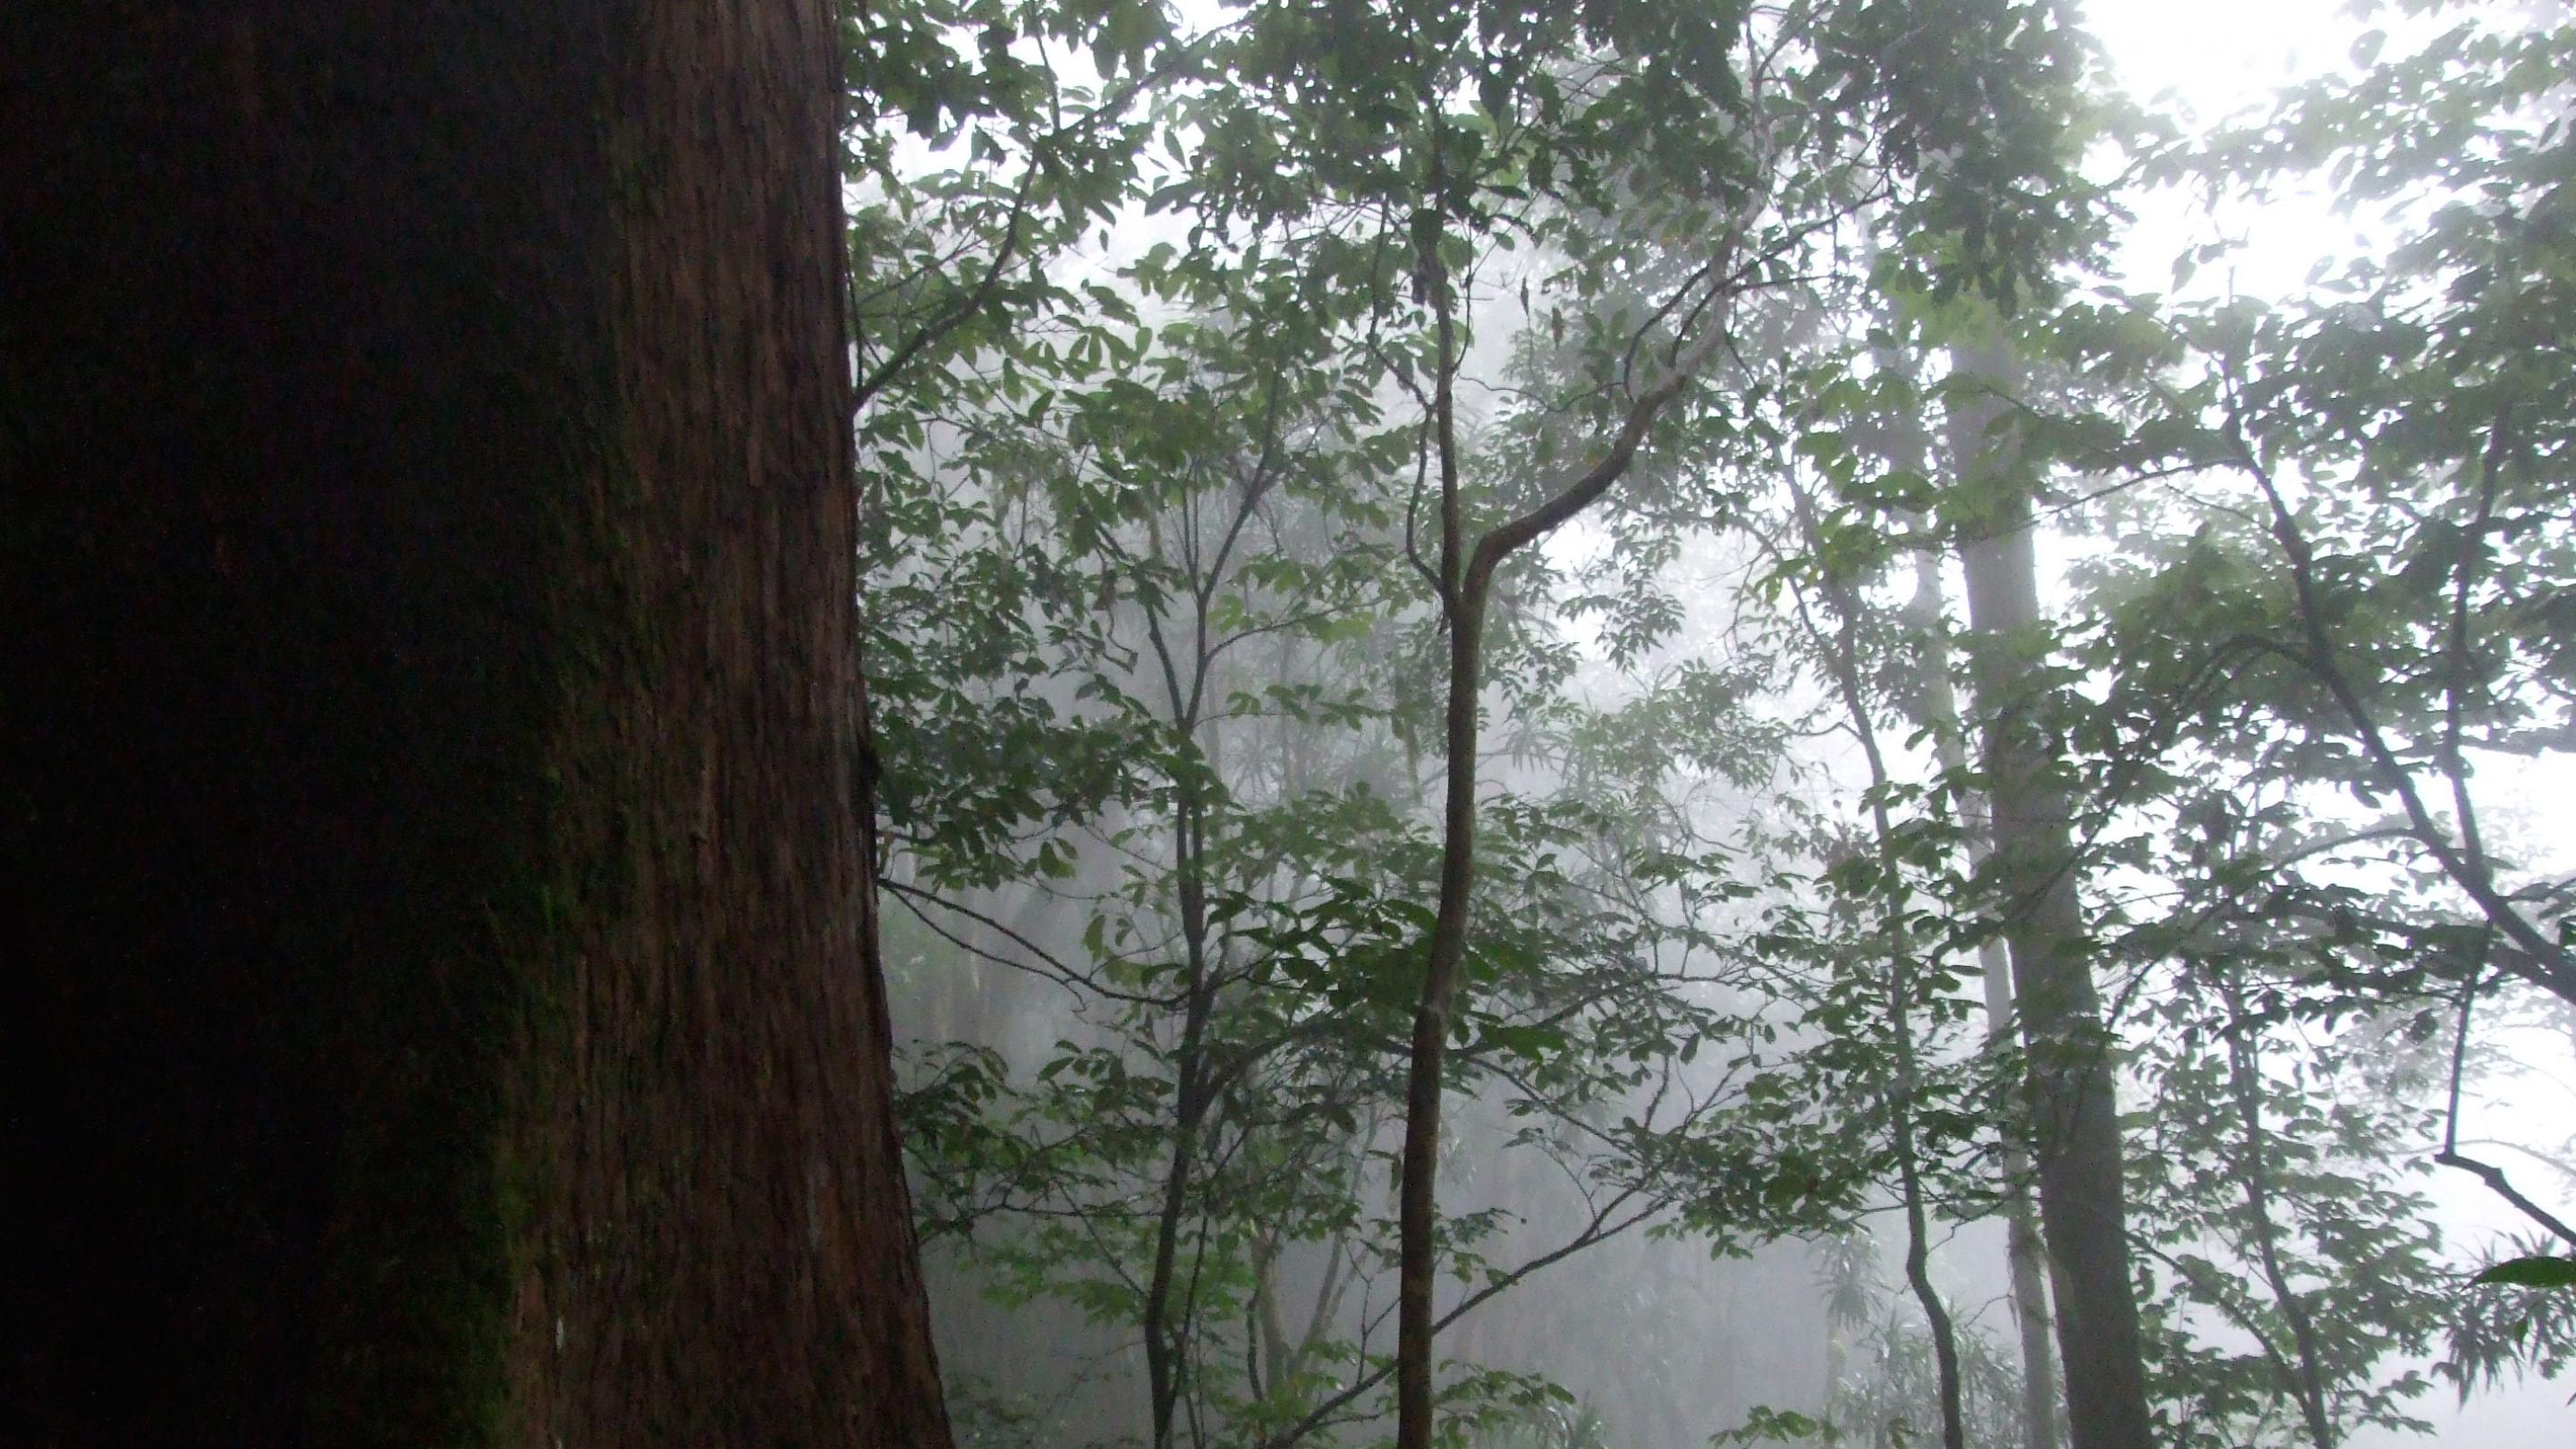 Image showing Mwanihana Forest Reserve, Tanzania Mist and giant trees in the forests of Udzungwa National Park, Tanzania (T.Lovett)